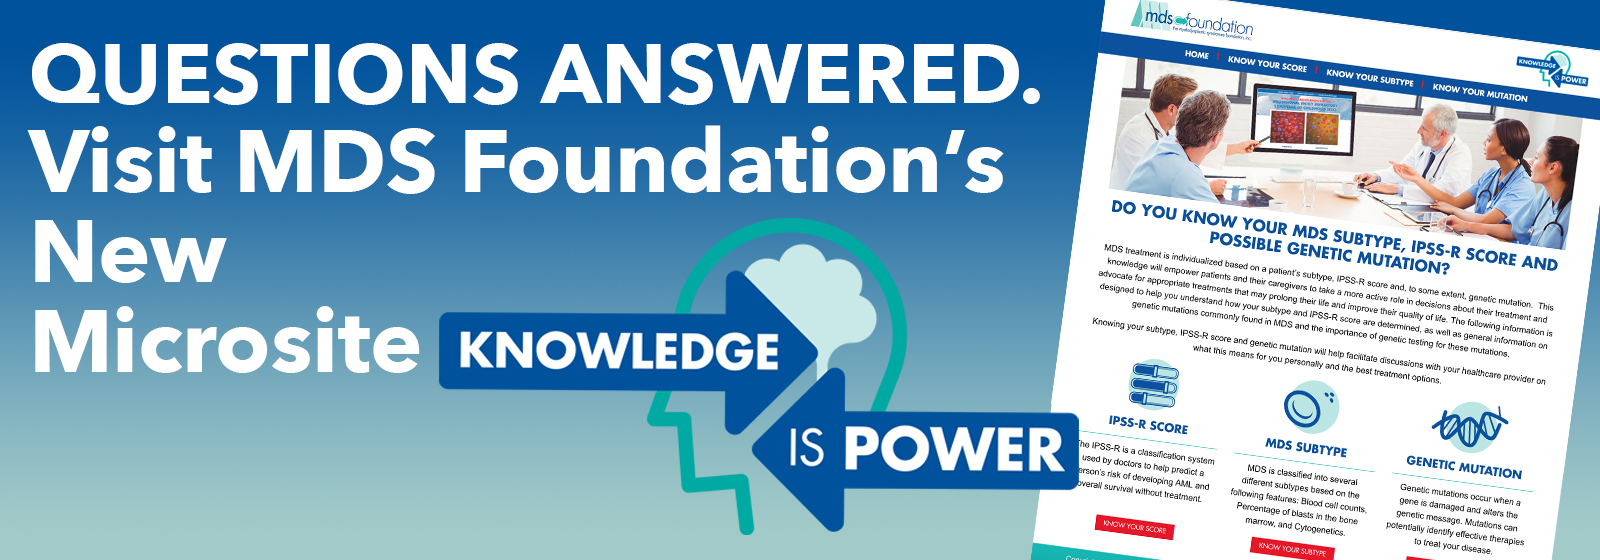 Questions Answered. Visit MDS Foundation's New Microsite: Knowledge is Power